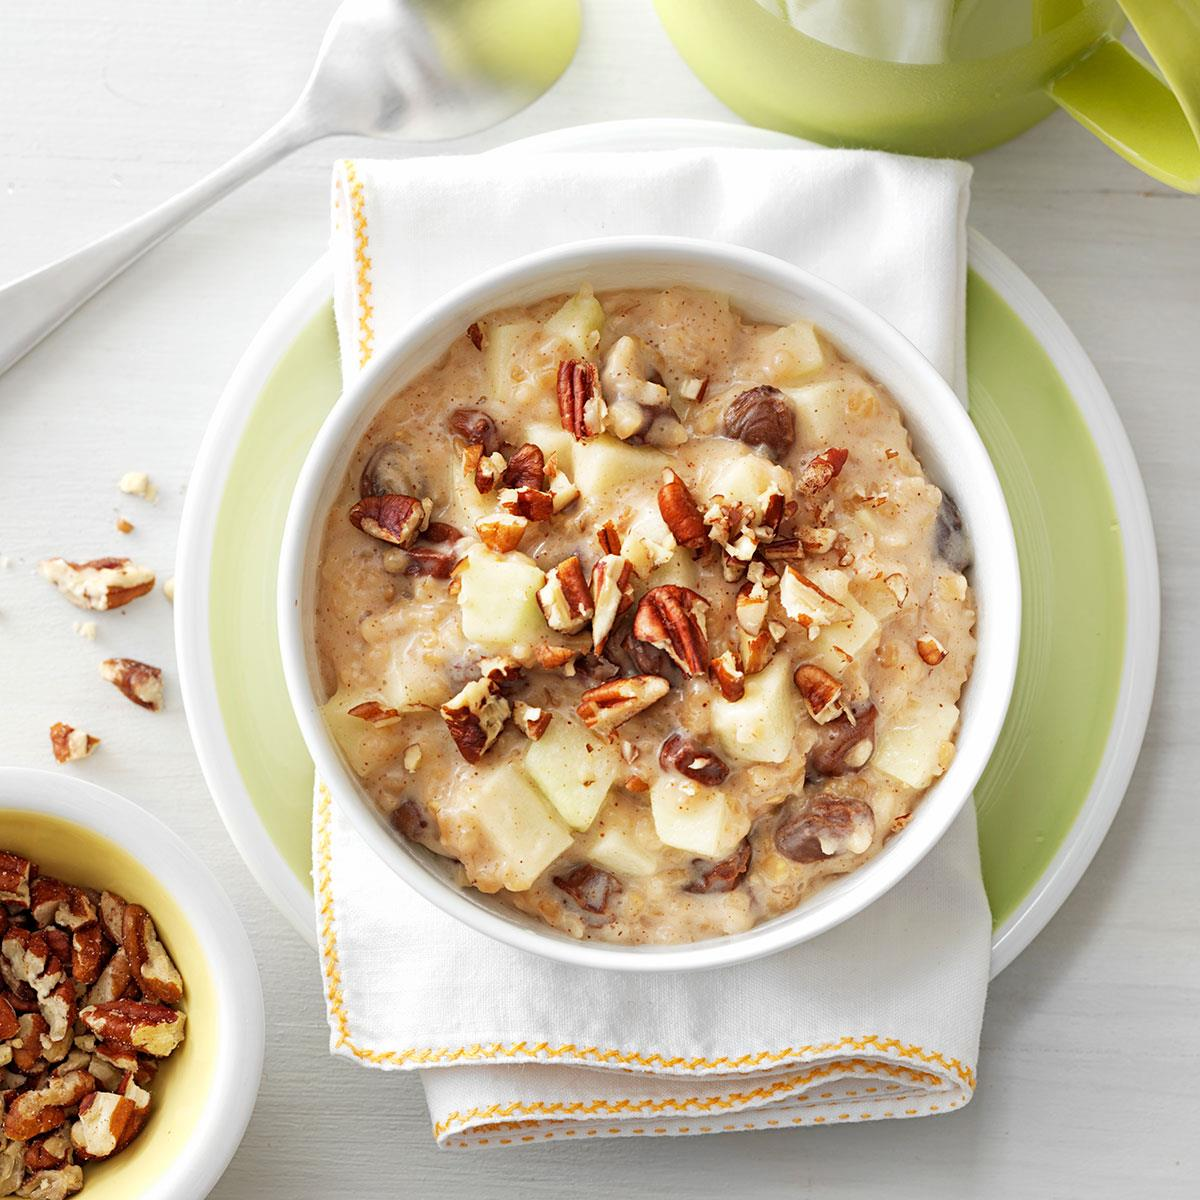 Image result for nuts with oats